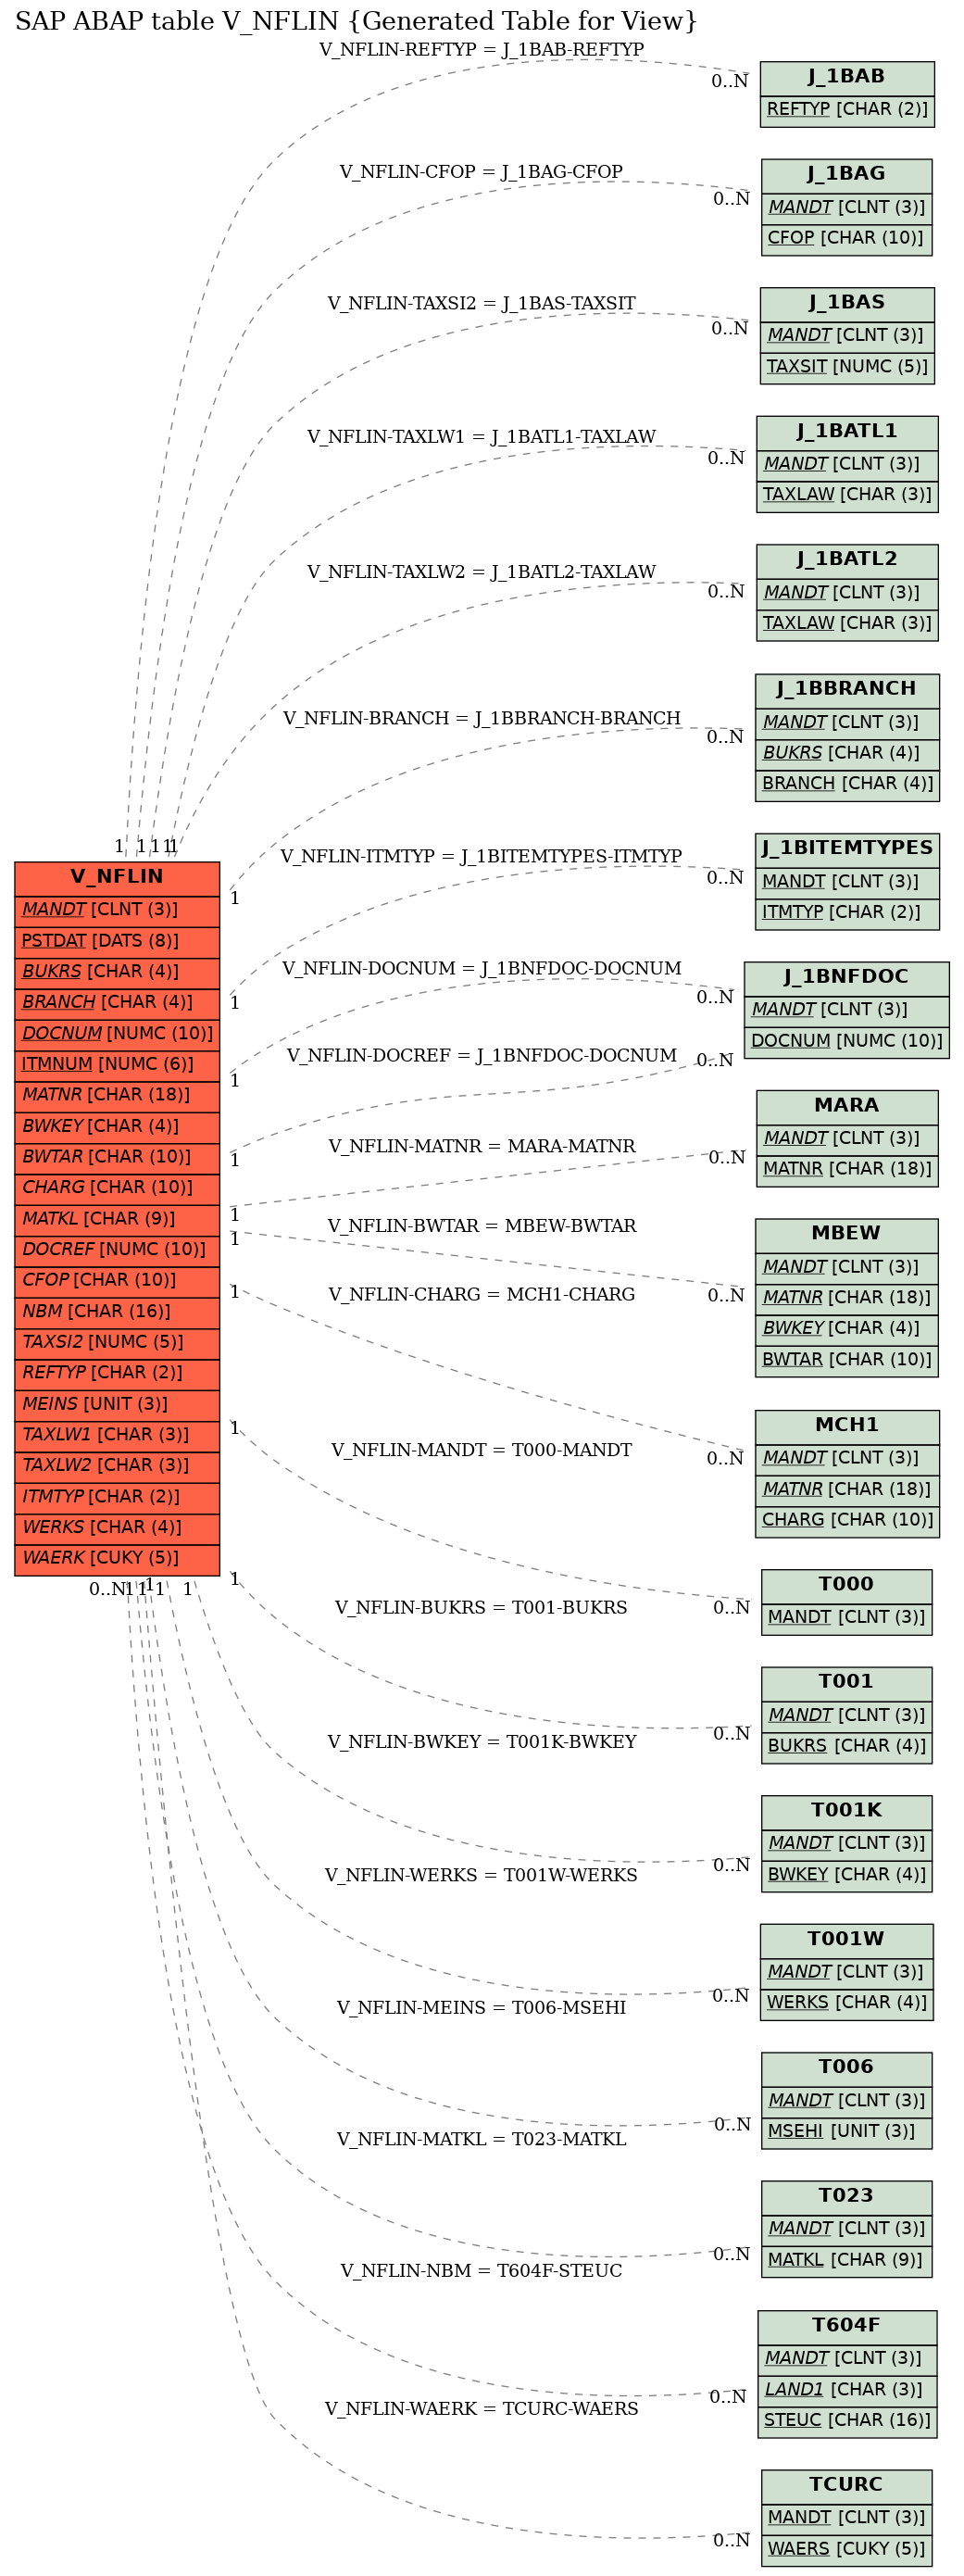 E-R Diagram for table V_NFLIN (Generated Table for View)